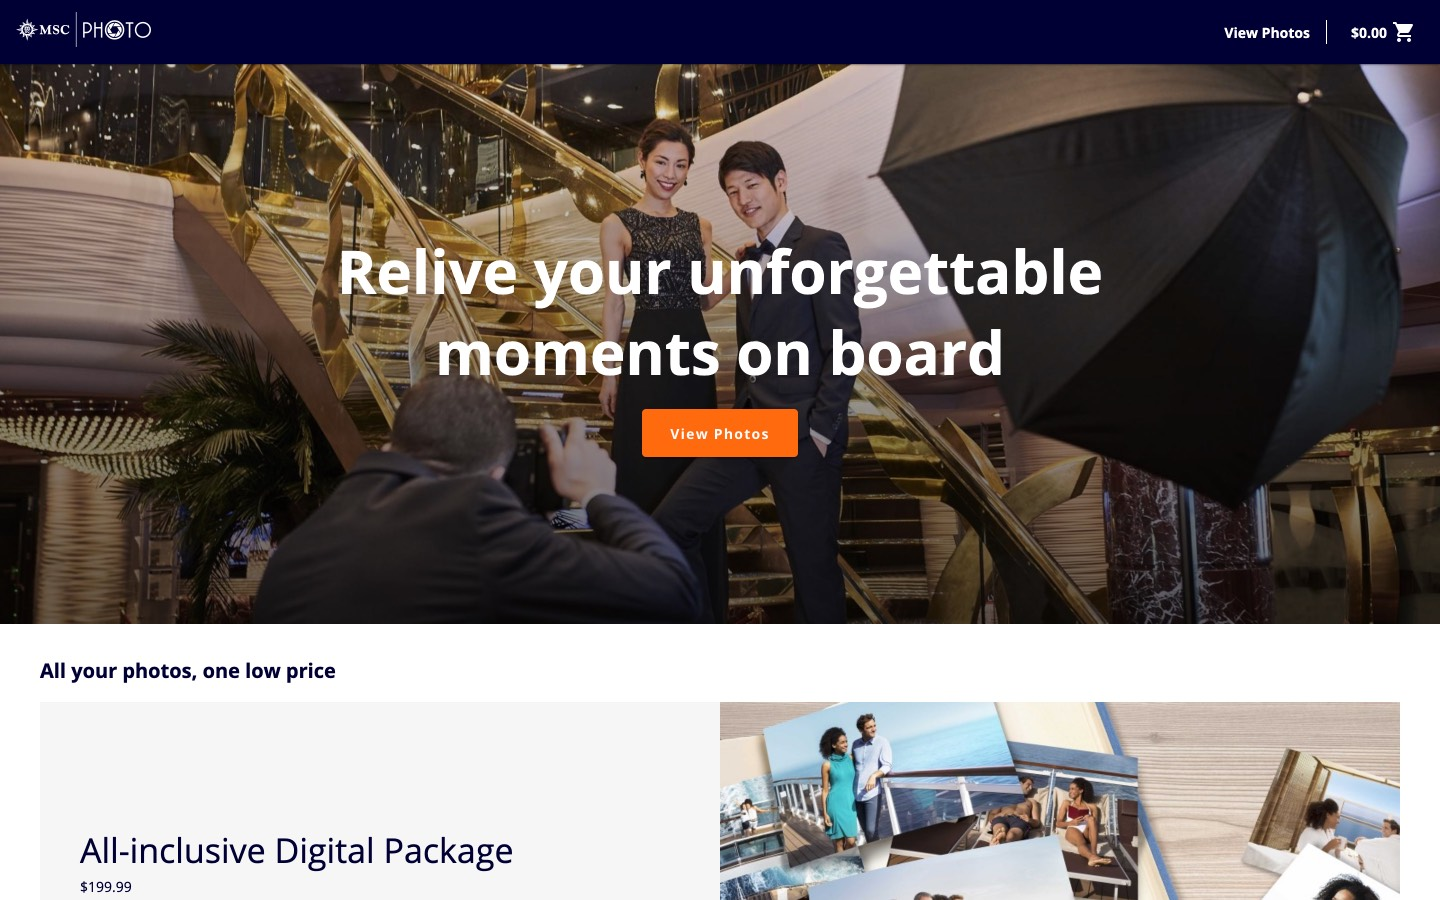 A screenshot of the My MSC Photos home page showing a photo of a couple getting their picture taken on a cruise ship.